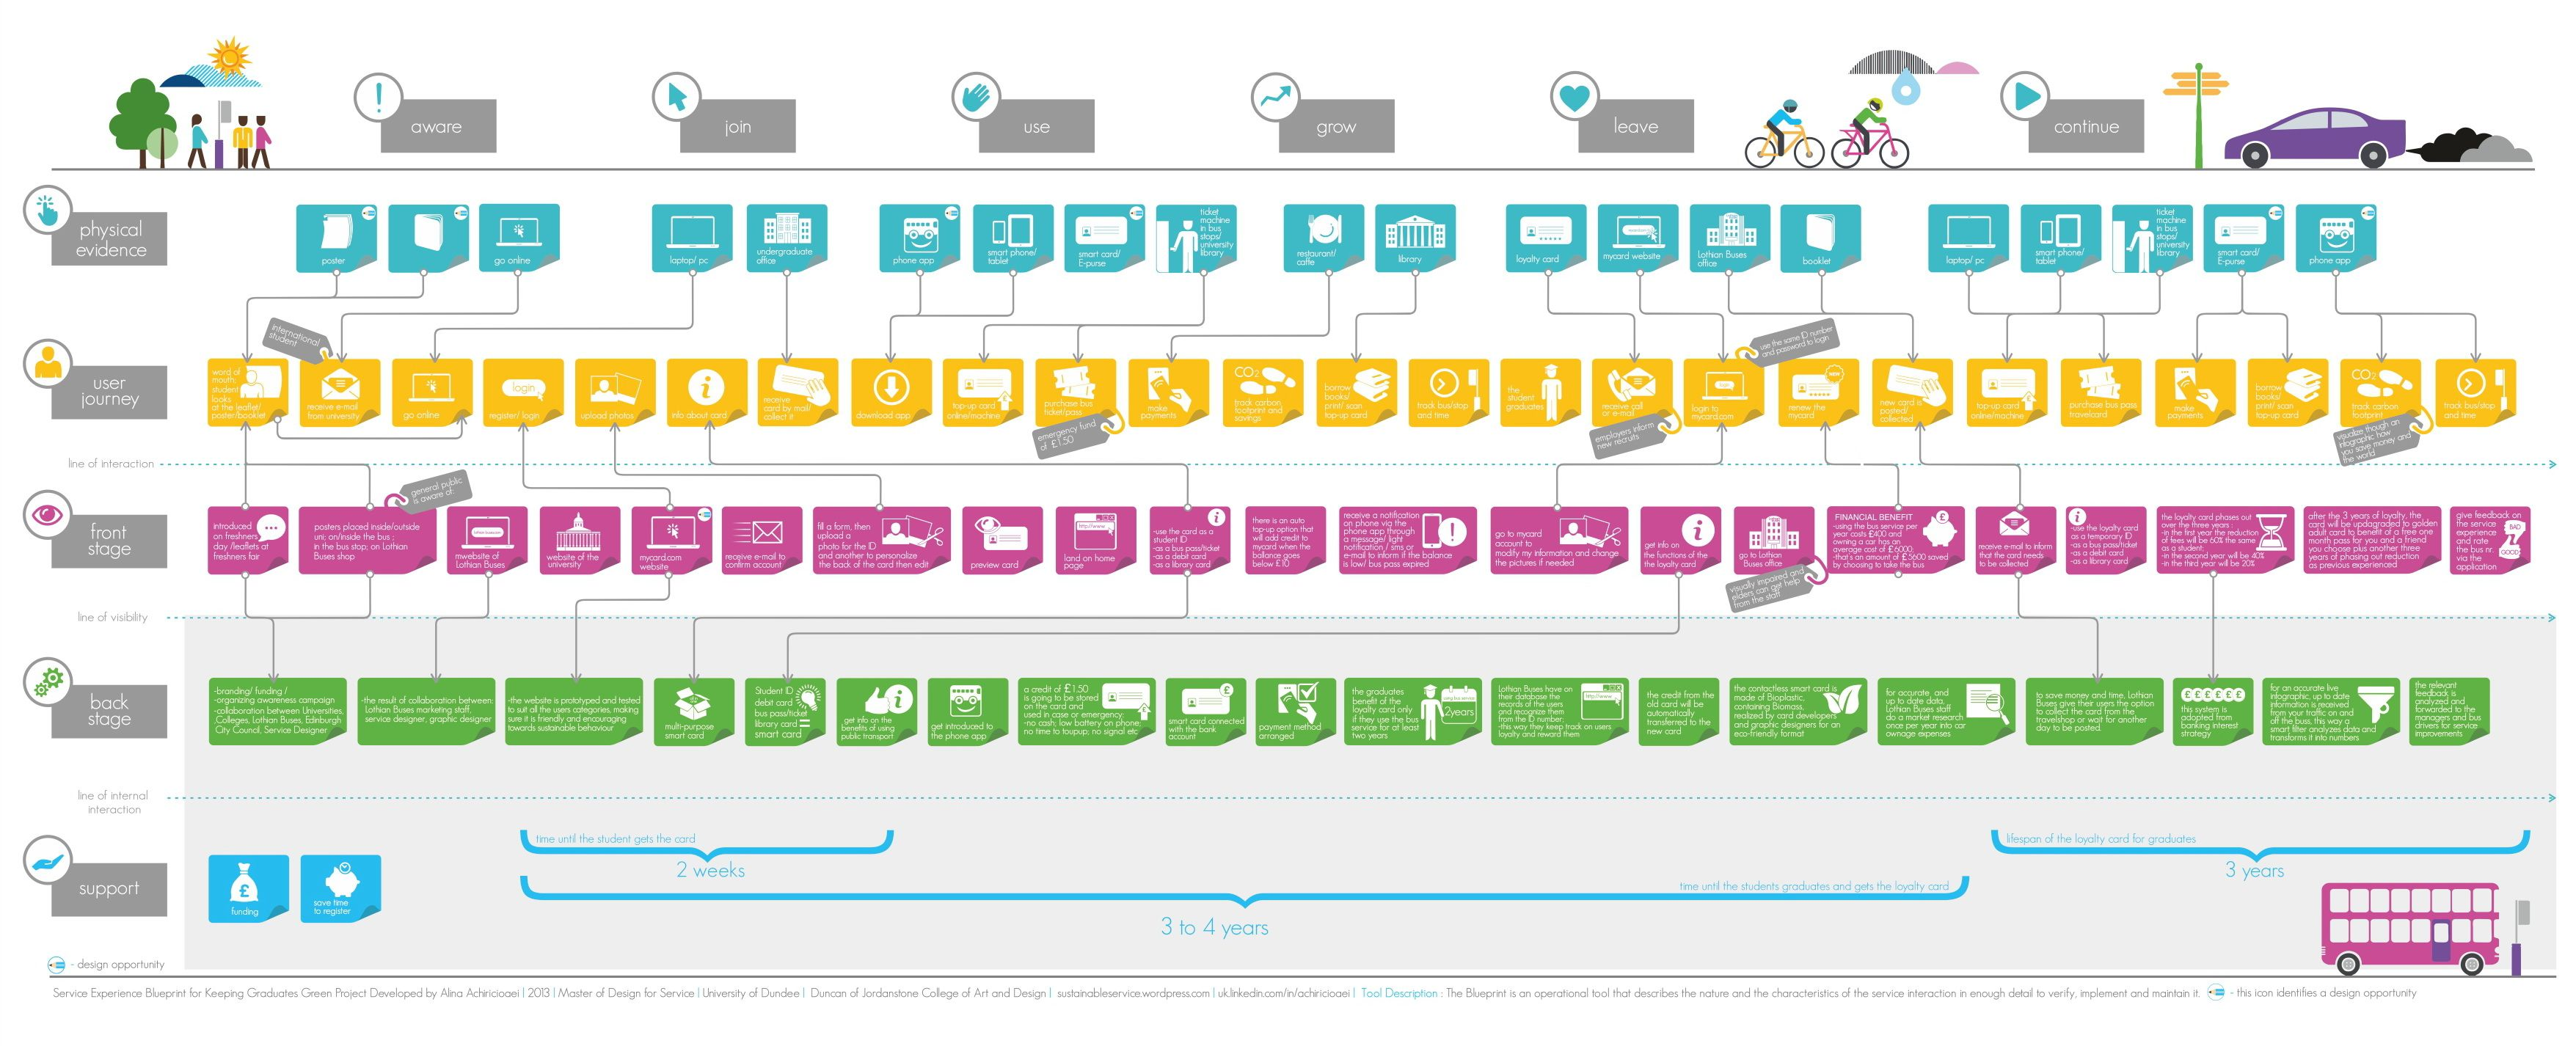 Image result for service design blueprint examples service image result for service design blueprint examples malvernweather